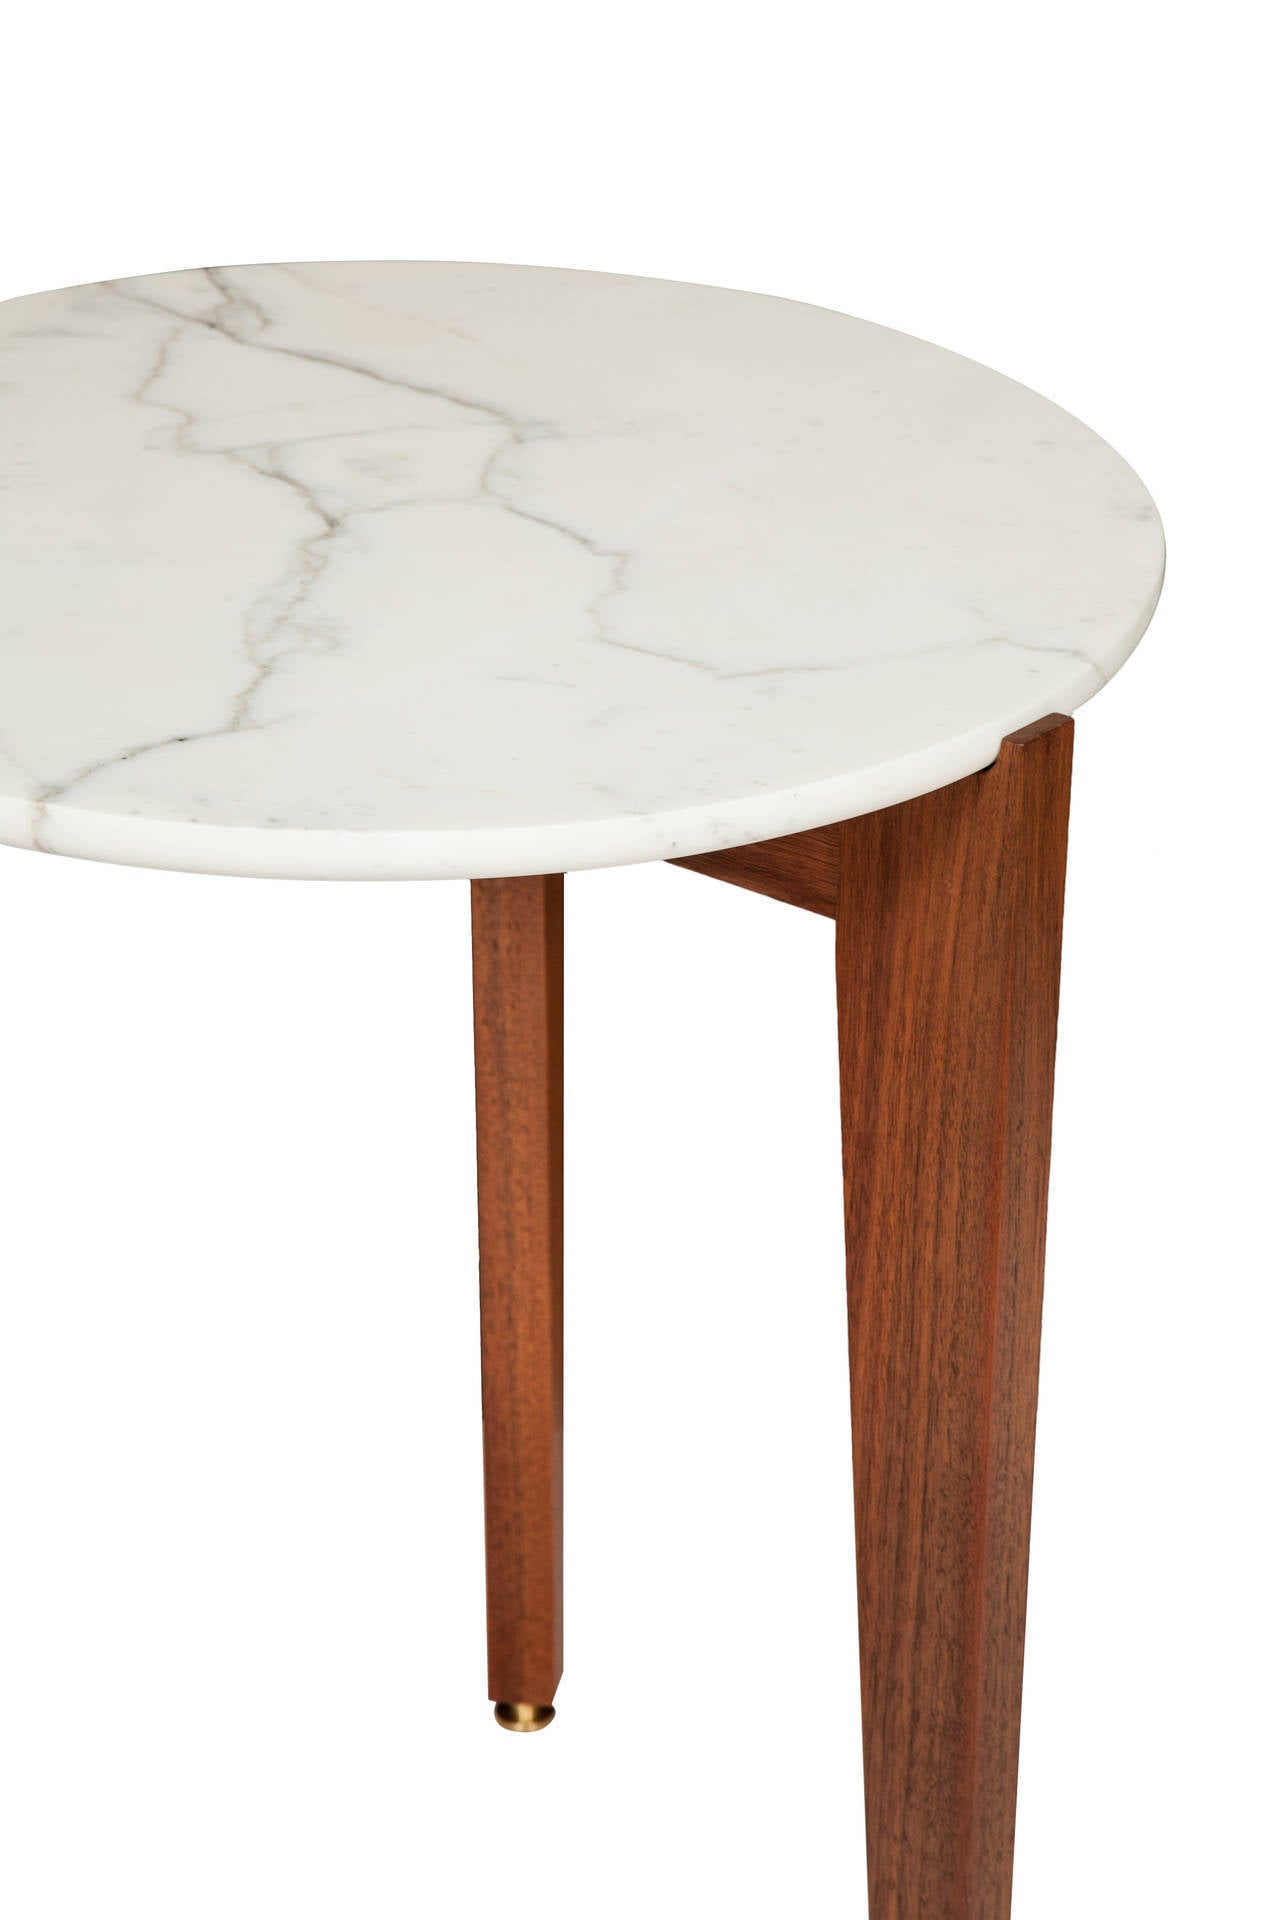 American Stillmade Walnut Tripod Side Table with Calcutta Marble Top For Sale